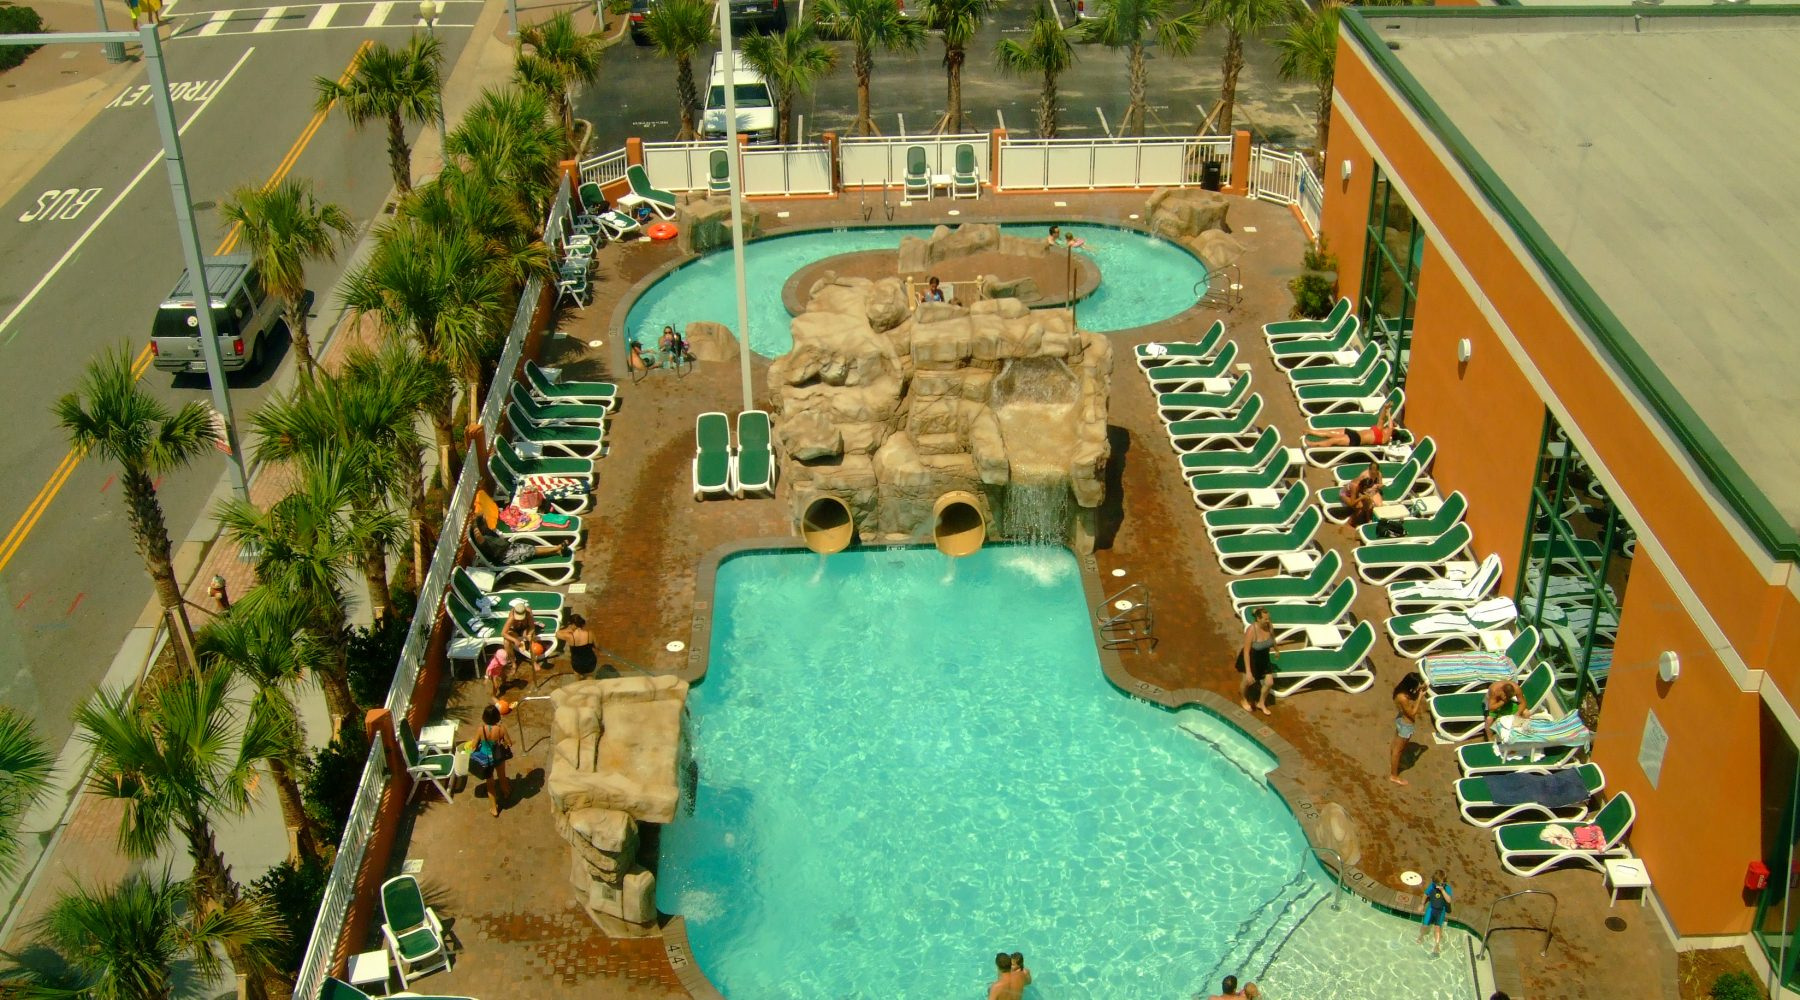 hotels in virginia beach | hotel deals | holiday inn